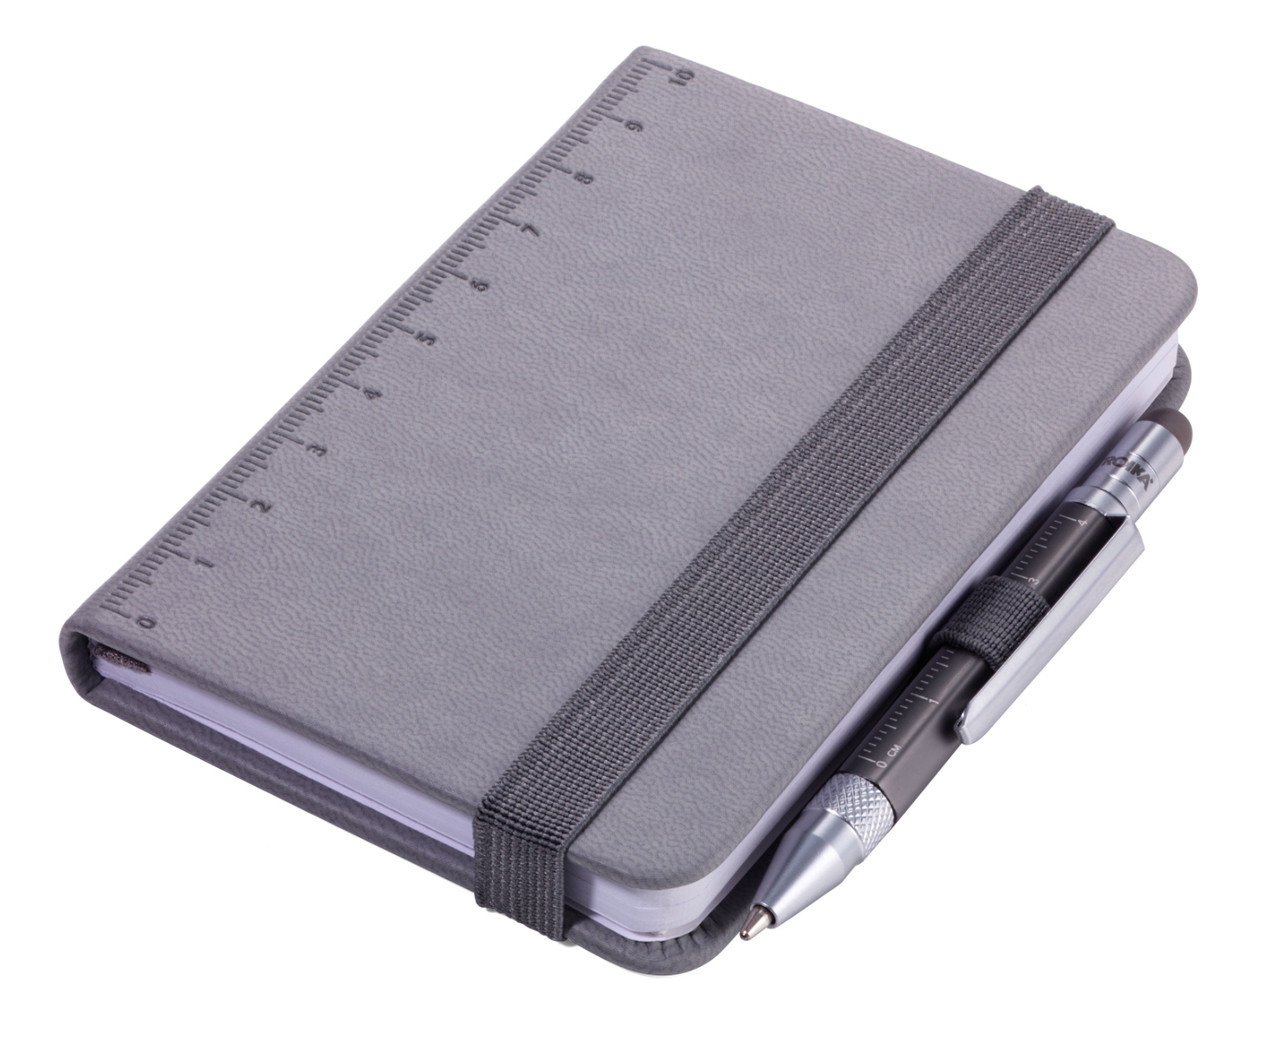 Troika Lilipad notebook and Liliput pen, grey.